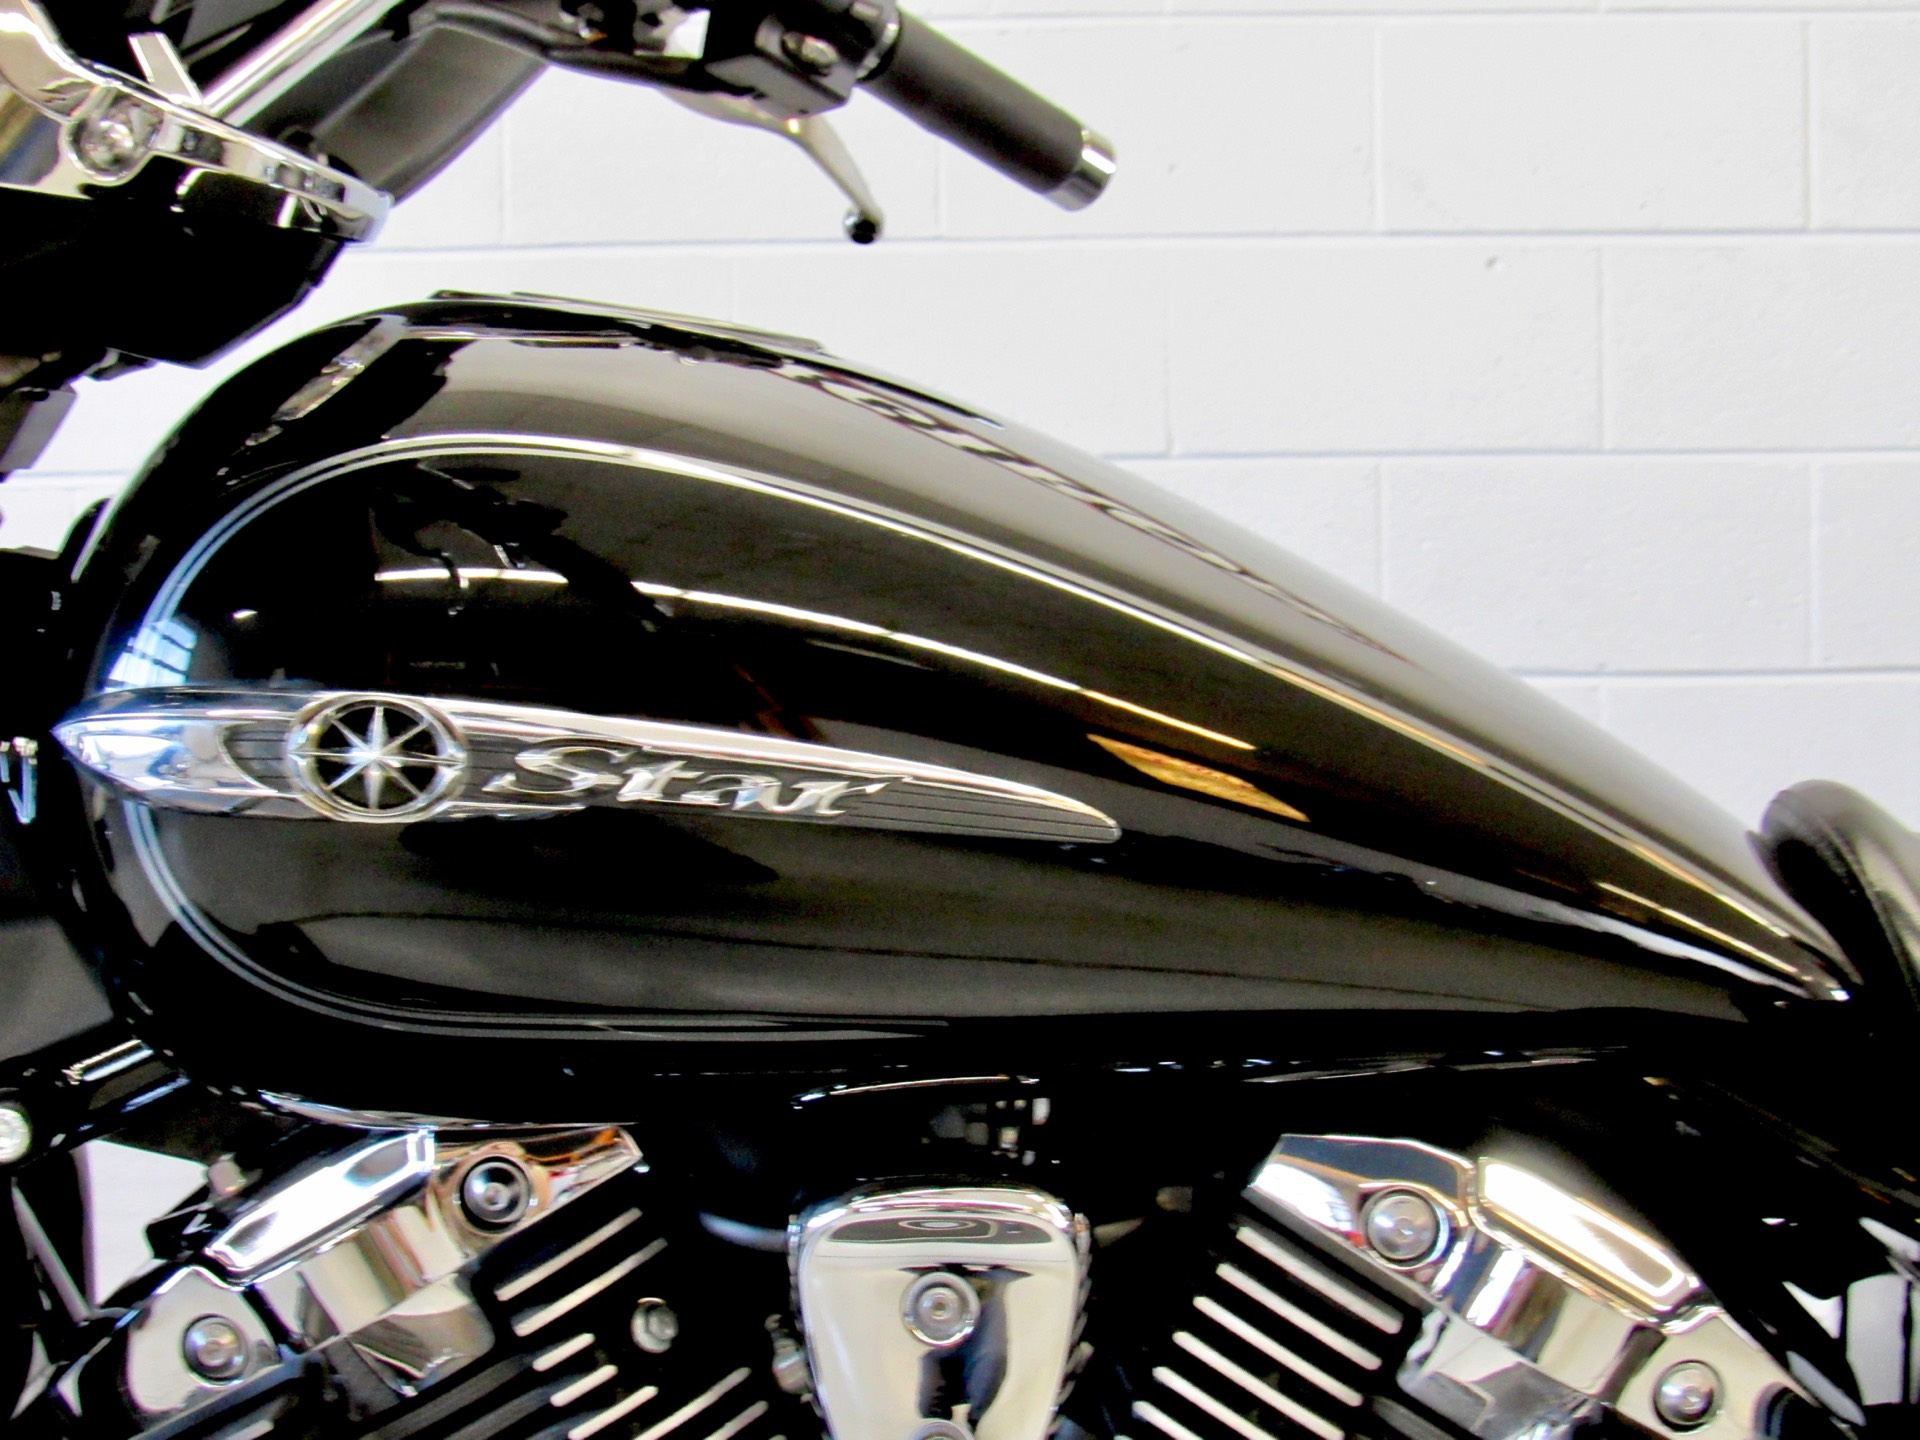 2015 Yamaha V Star 1300 Deluxe in Fredericksburg, Virginia - Photo 18